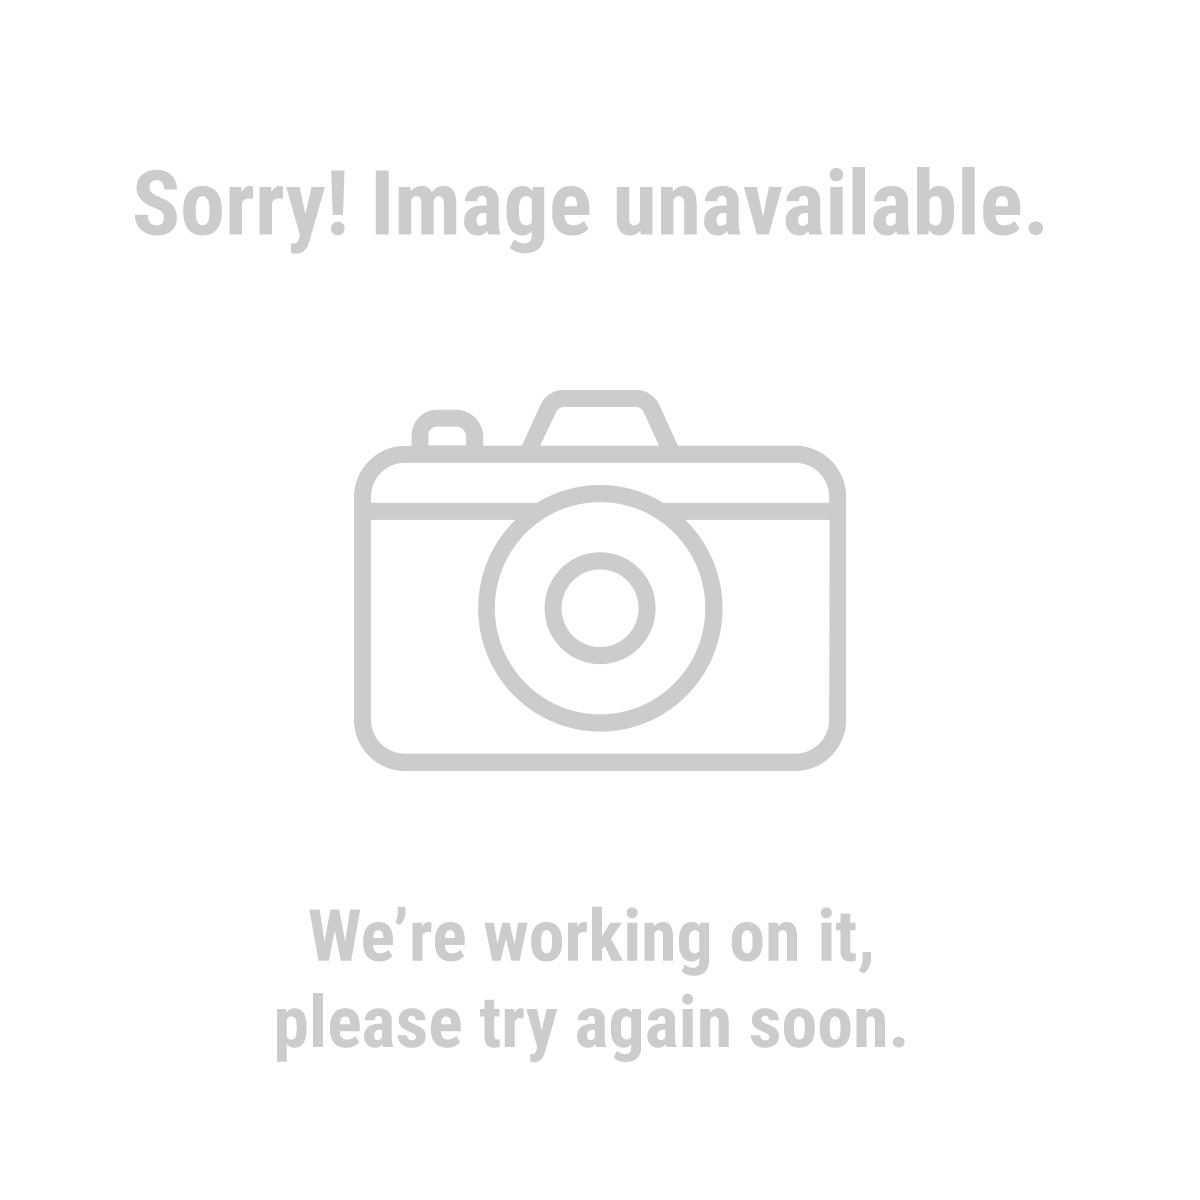 Pittsburgh Automotive 69563 3 Piece Plastic Spreader Set